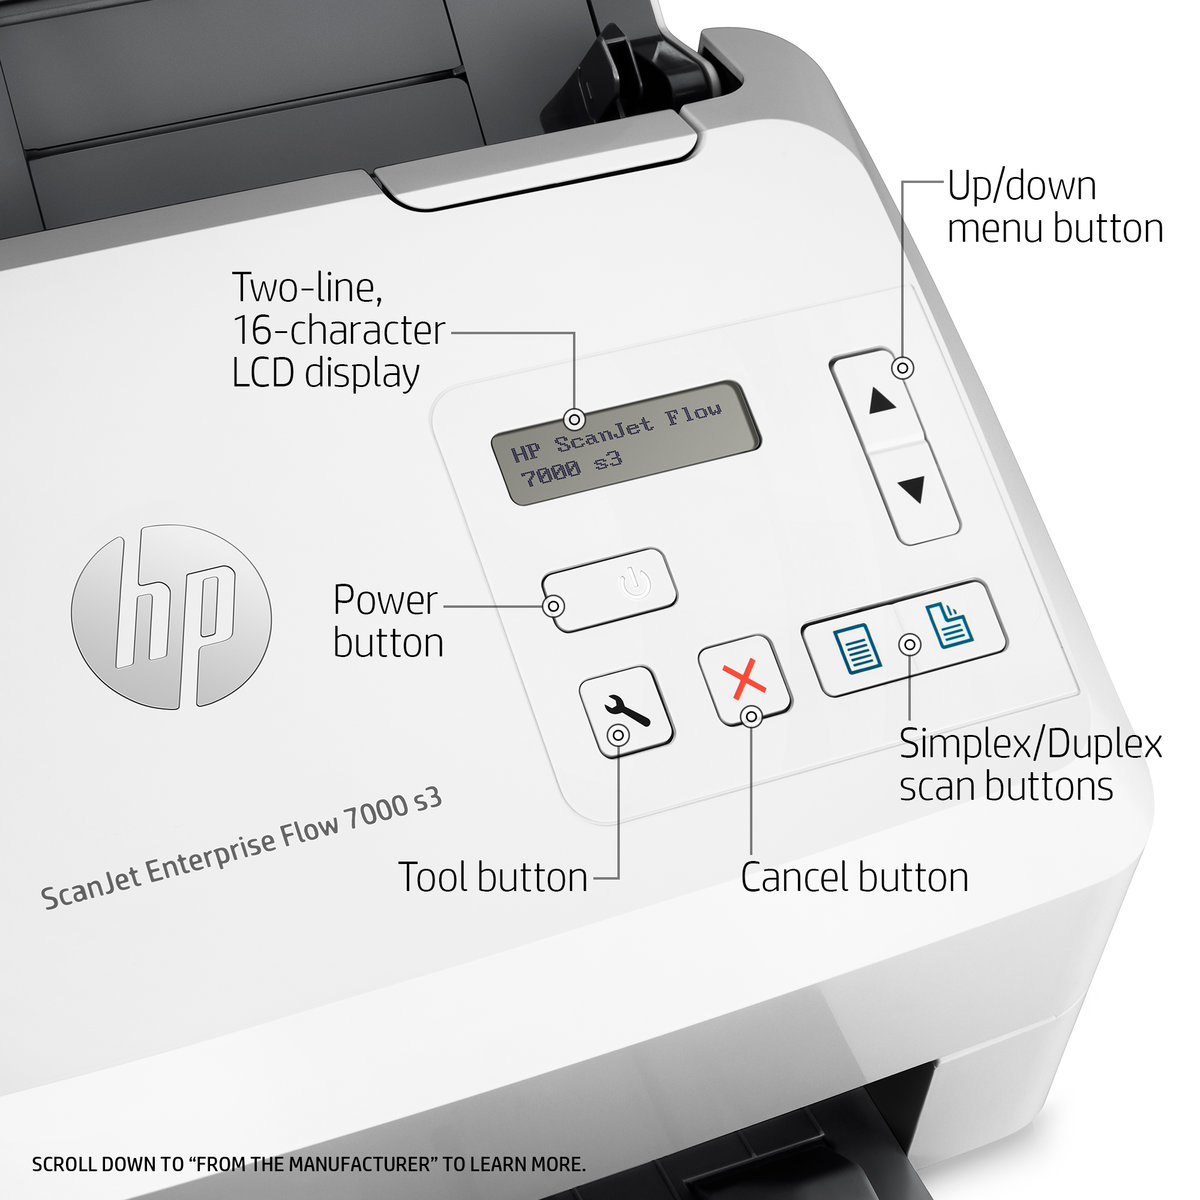 Hp Scanjet Enterprise Flow 7000 S3 Sheet Feed Scanner Product Rj11 Wiring Diagram Duplex Operation Details